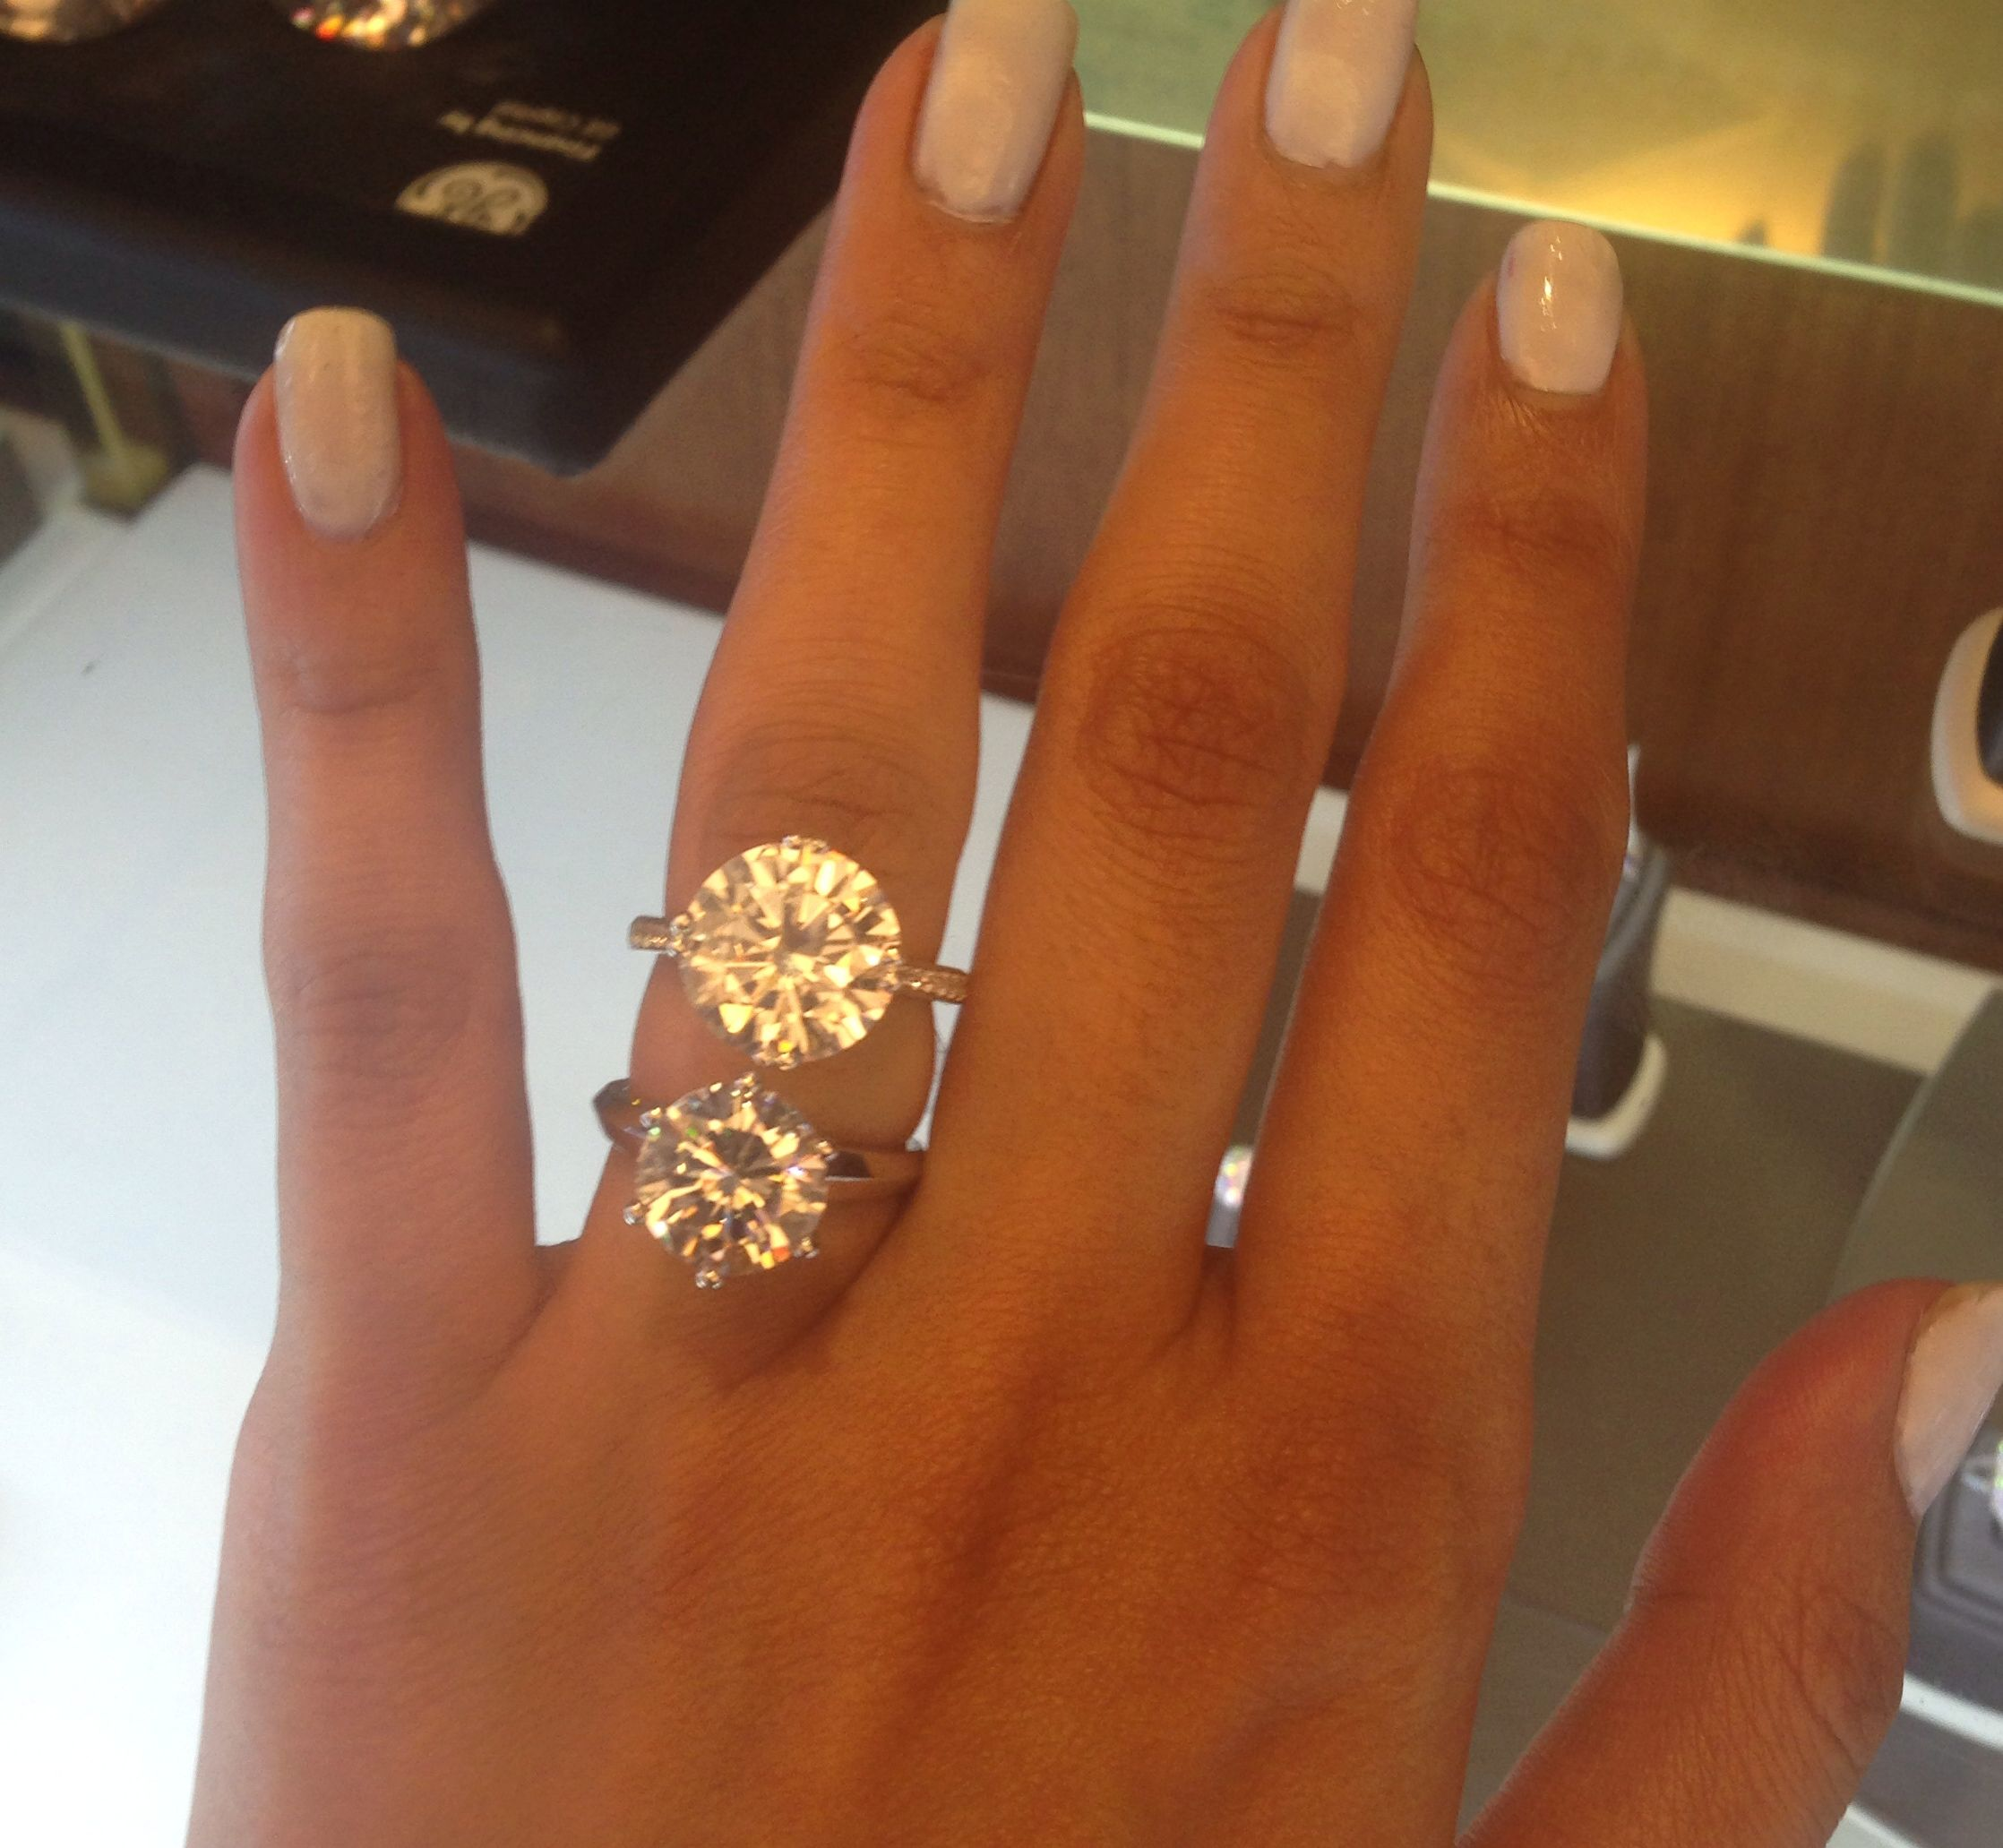 karat rings ring too engagement carat big topic